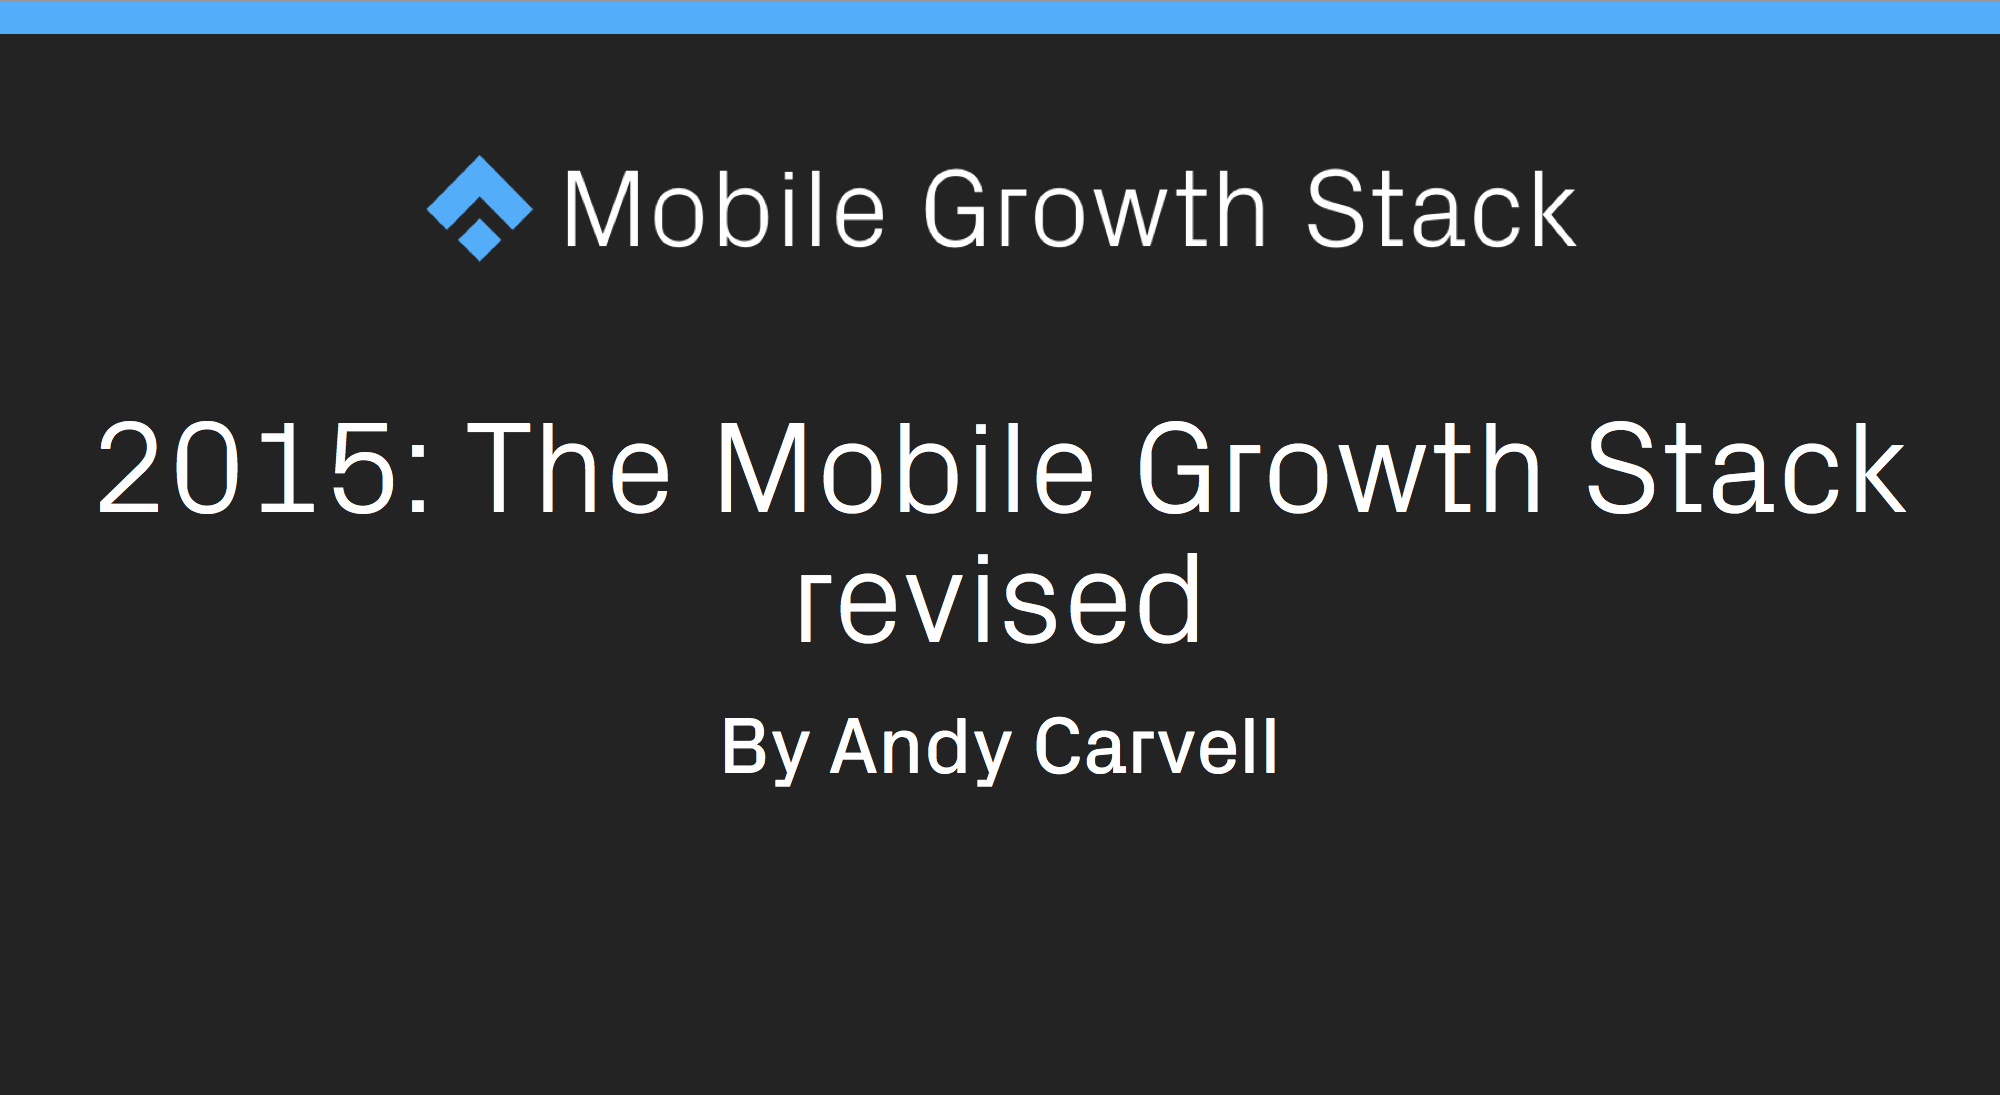 2015- The Mobile Growth Stack Revised